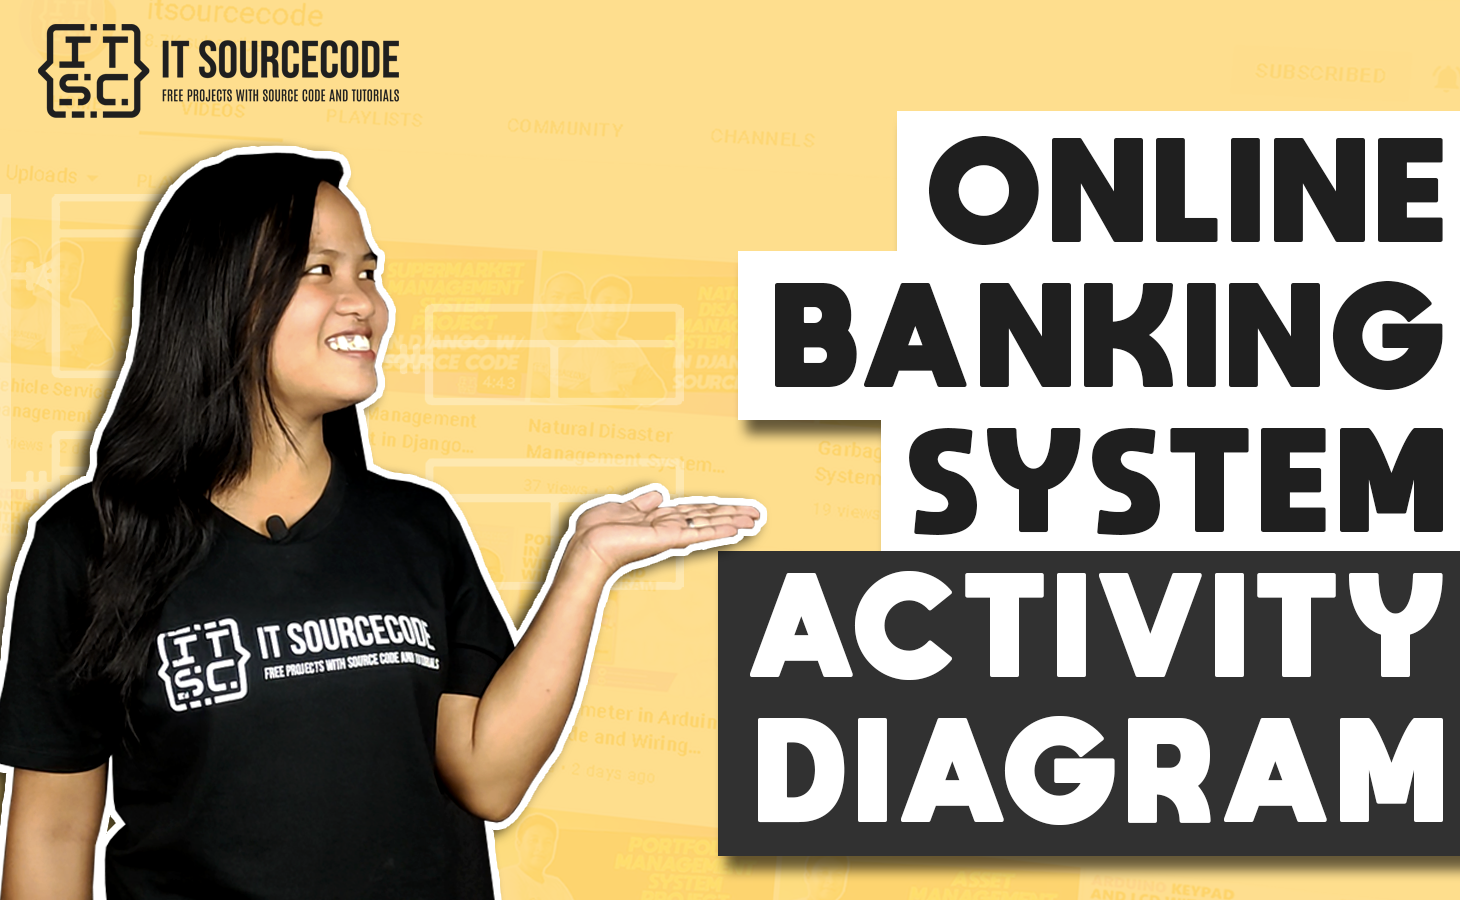 Online Banking System Activity Diagram